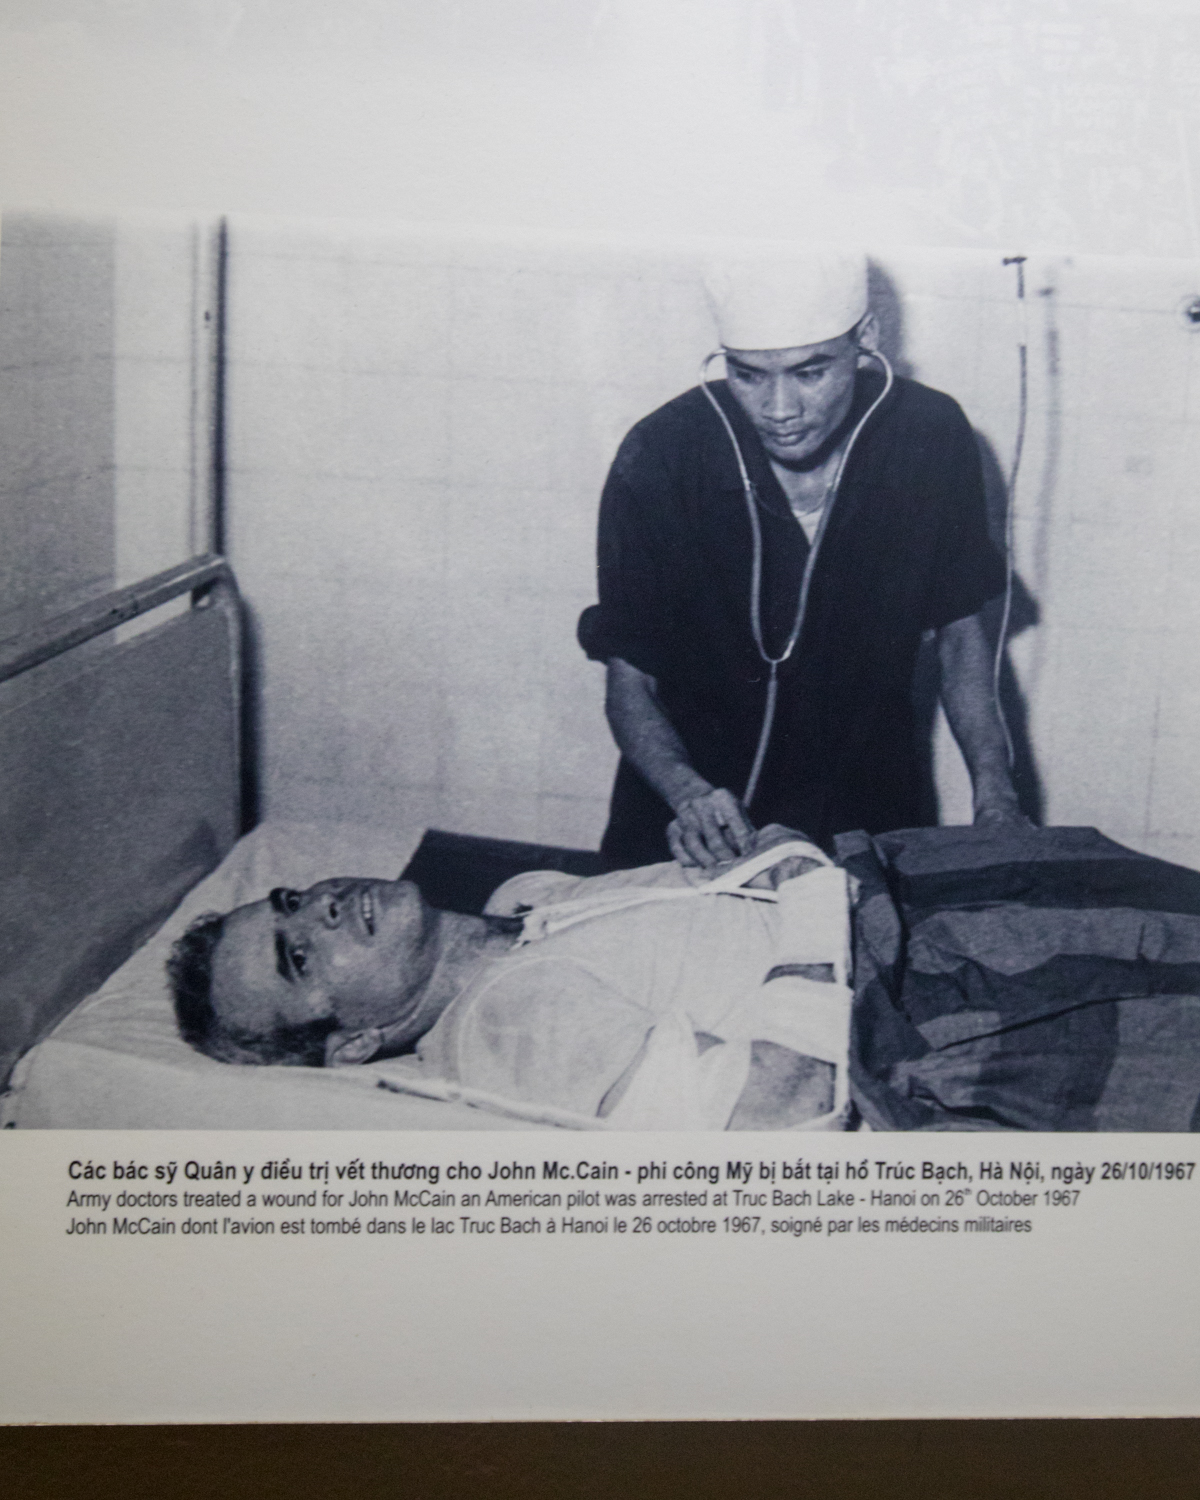 The case of John McCain - if it wasn't for Hoa Lo, he probably would have died from his injuries from the plane crash. What they don't tell you is that the guards tortured him so severely that he couldn't lift his arms above his shoulders for the rest of his life.